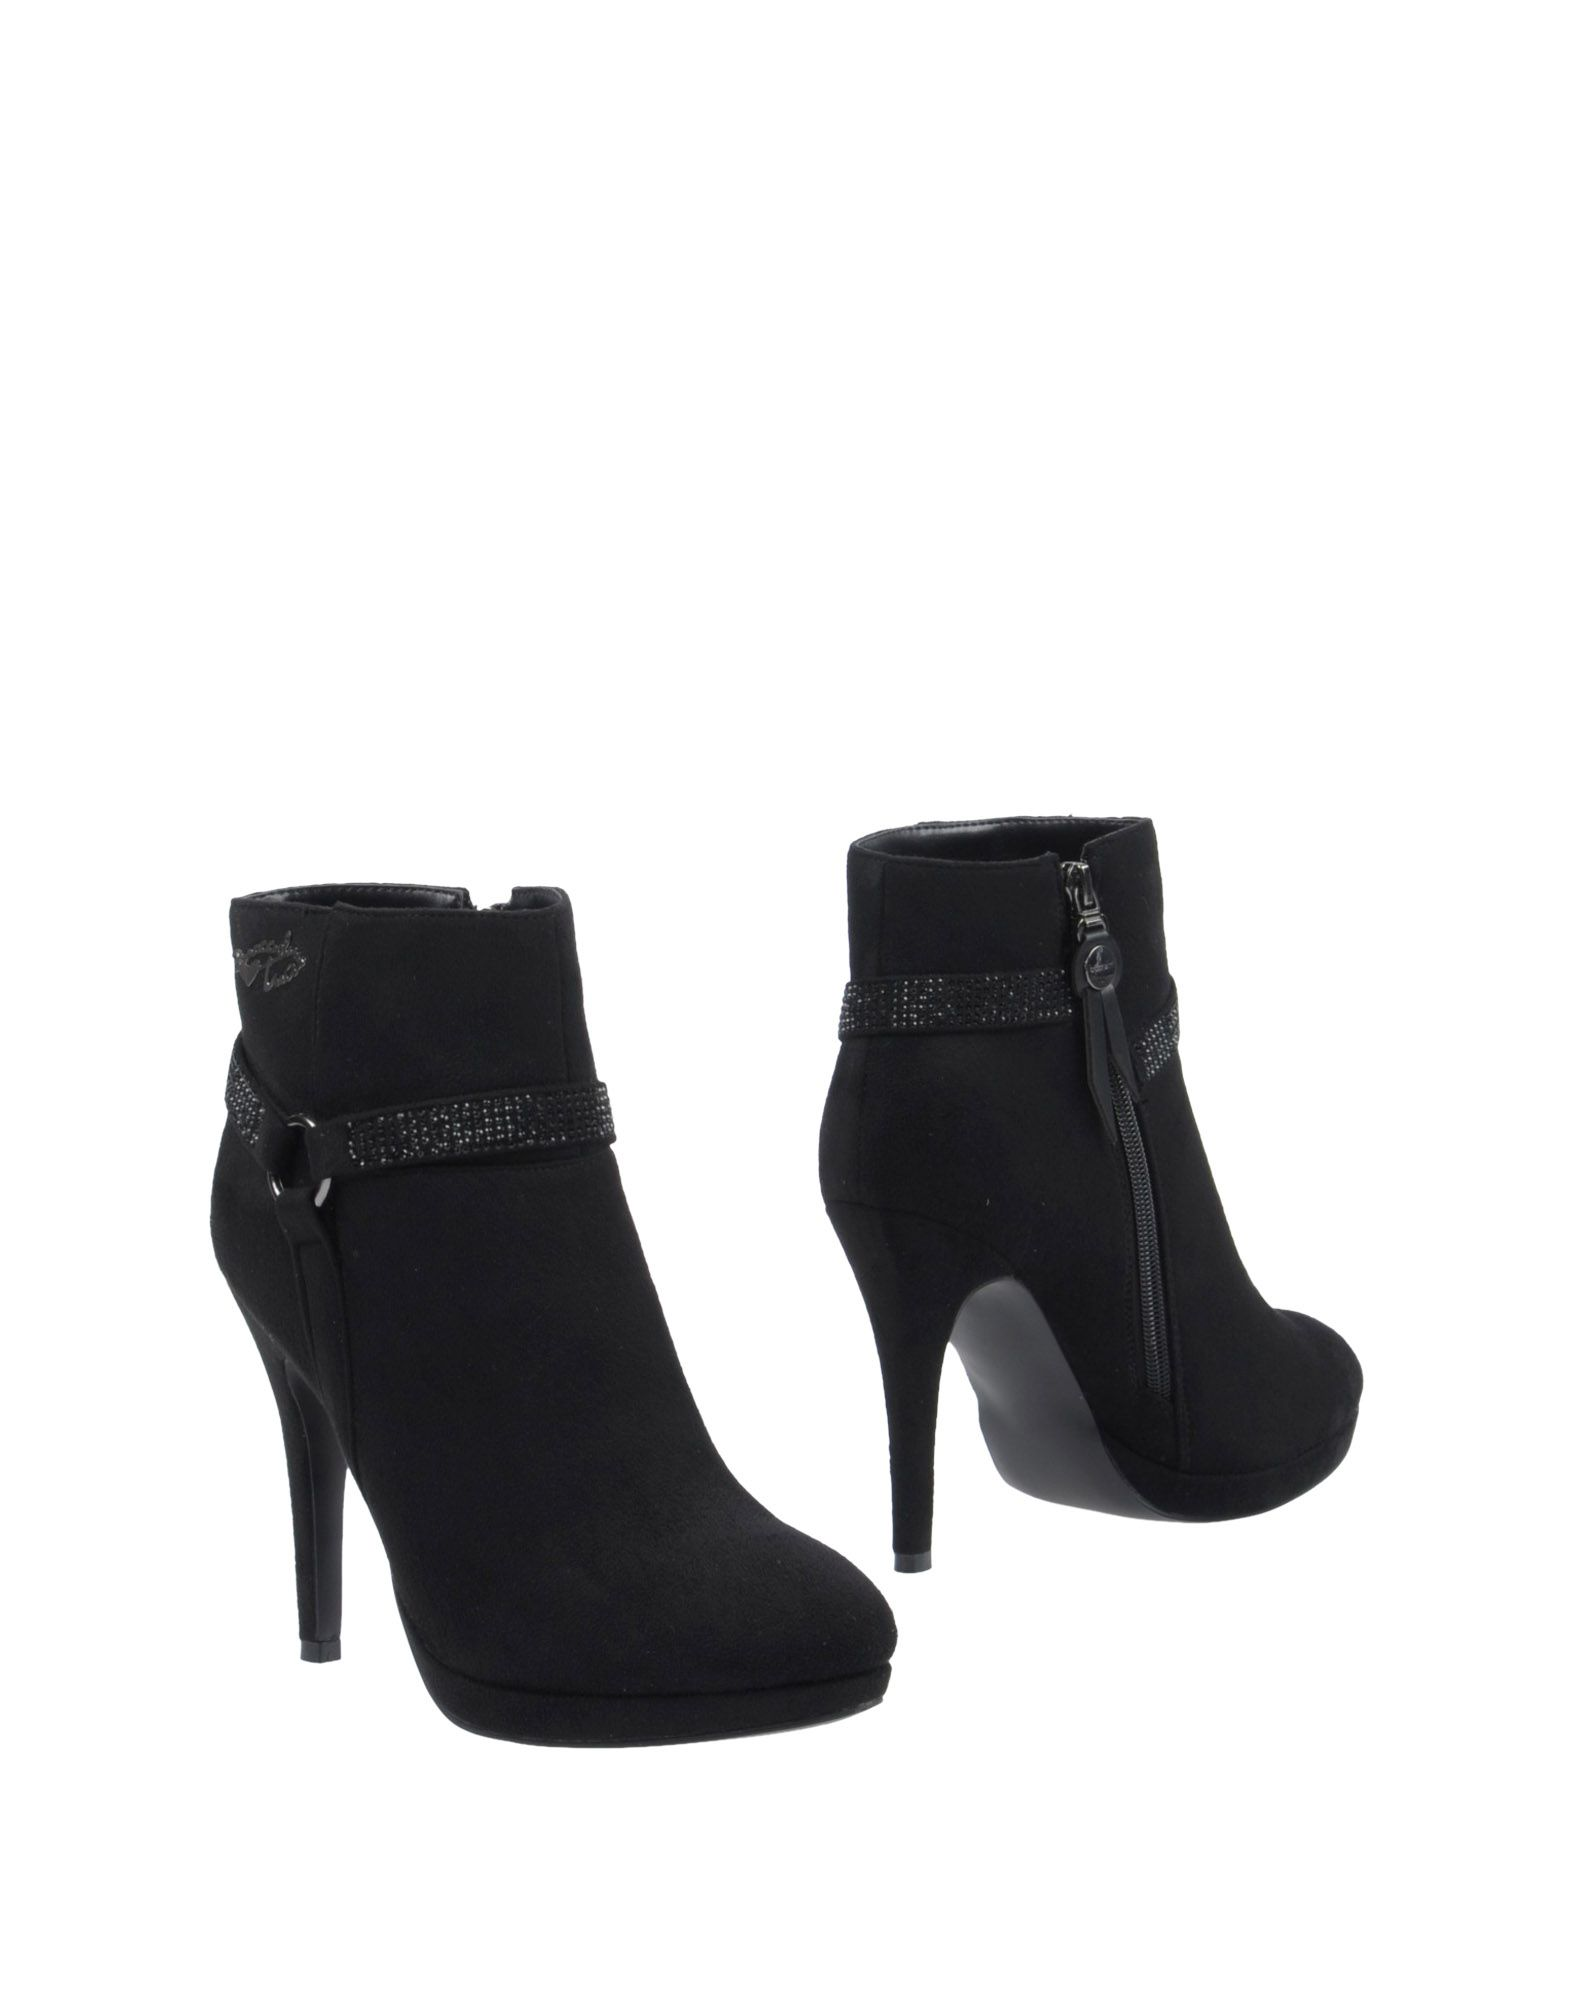 Bottine Tua By Braccialini Femme - Bottines Tua By Braccialini sur